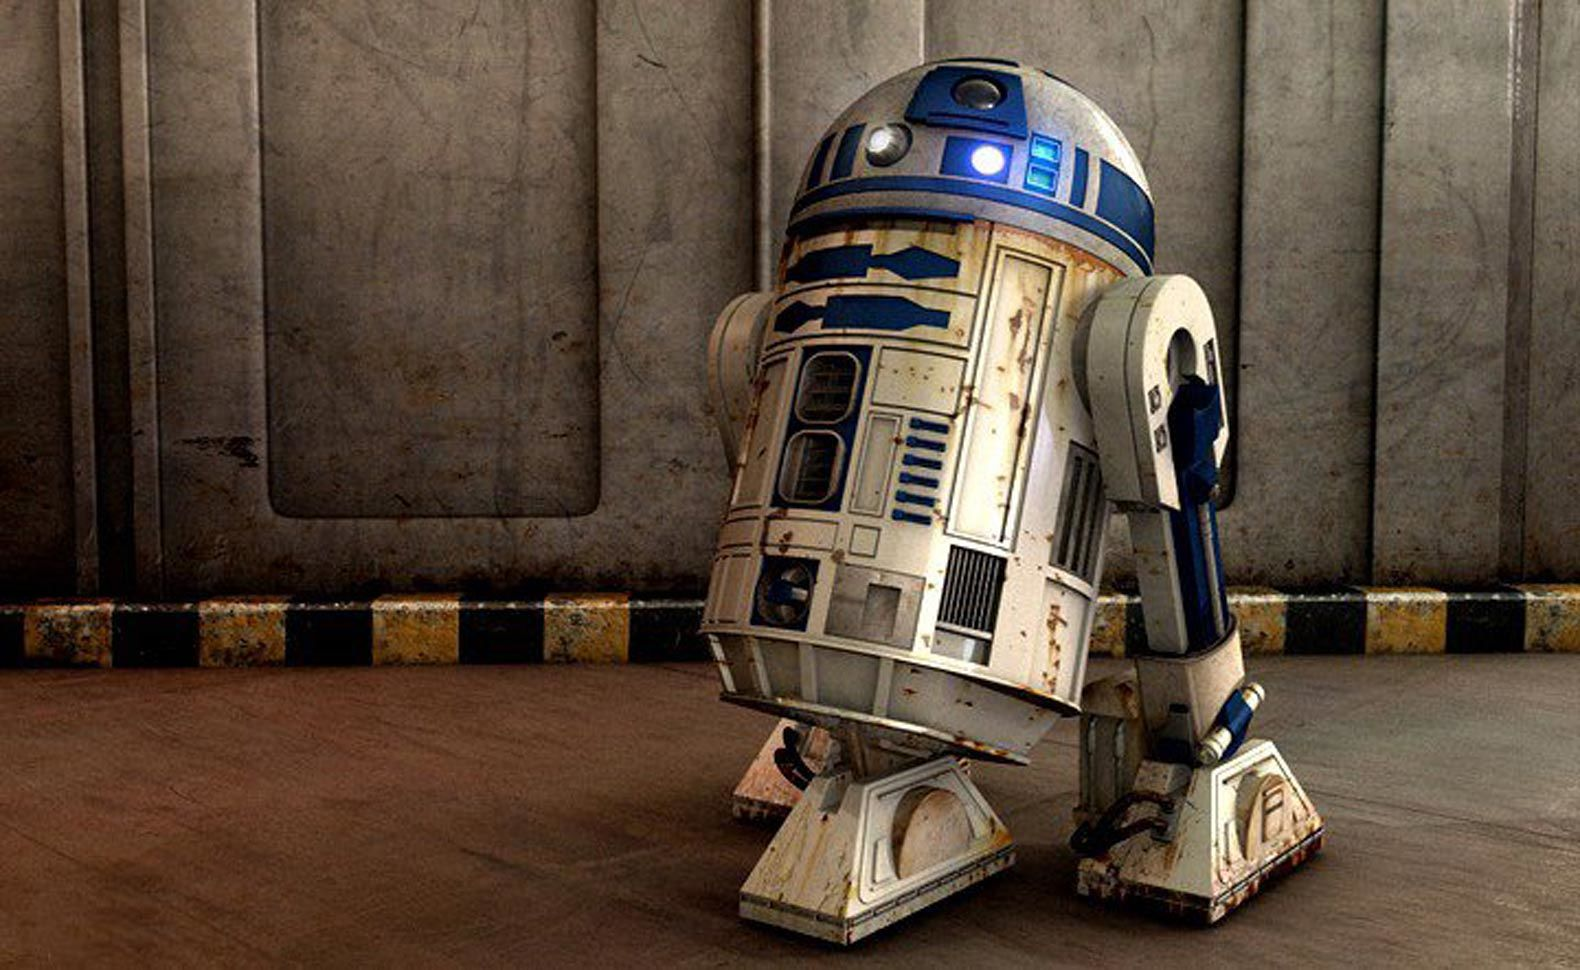 why-luke-skywalker-left-r2d2-behind-in-star-wars-7-the-force-awakens-797755